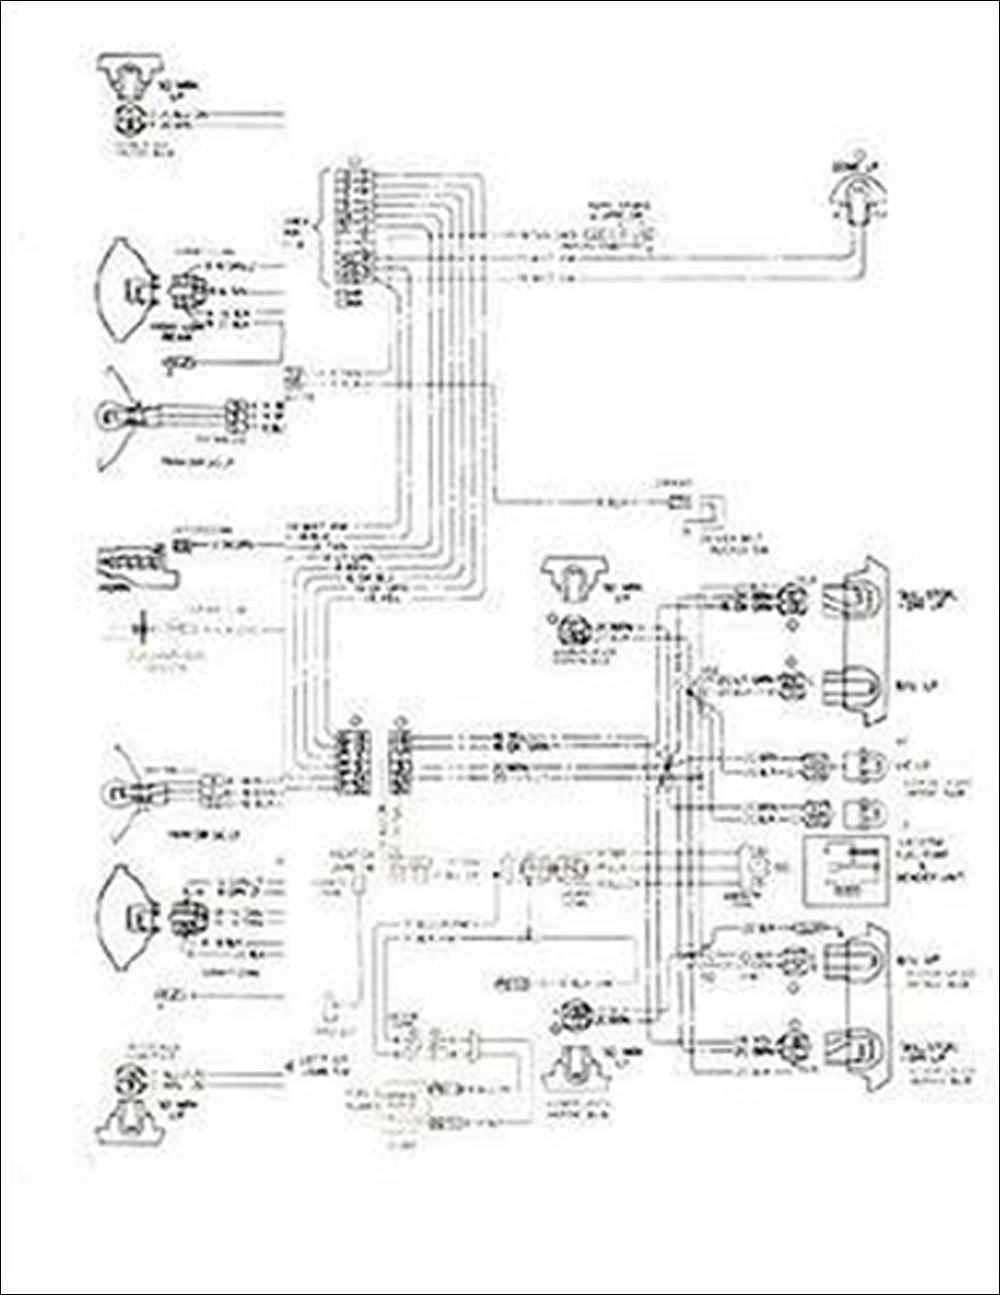 medium resolution of 82 monte carlo wiring diagram wiring diagram for you82 monte carlo wiring diagram wiring library 1977